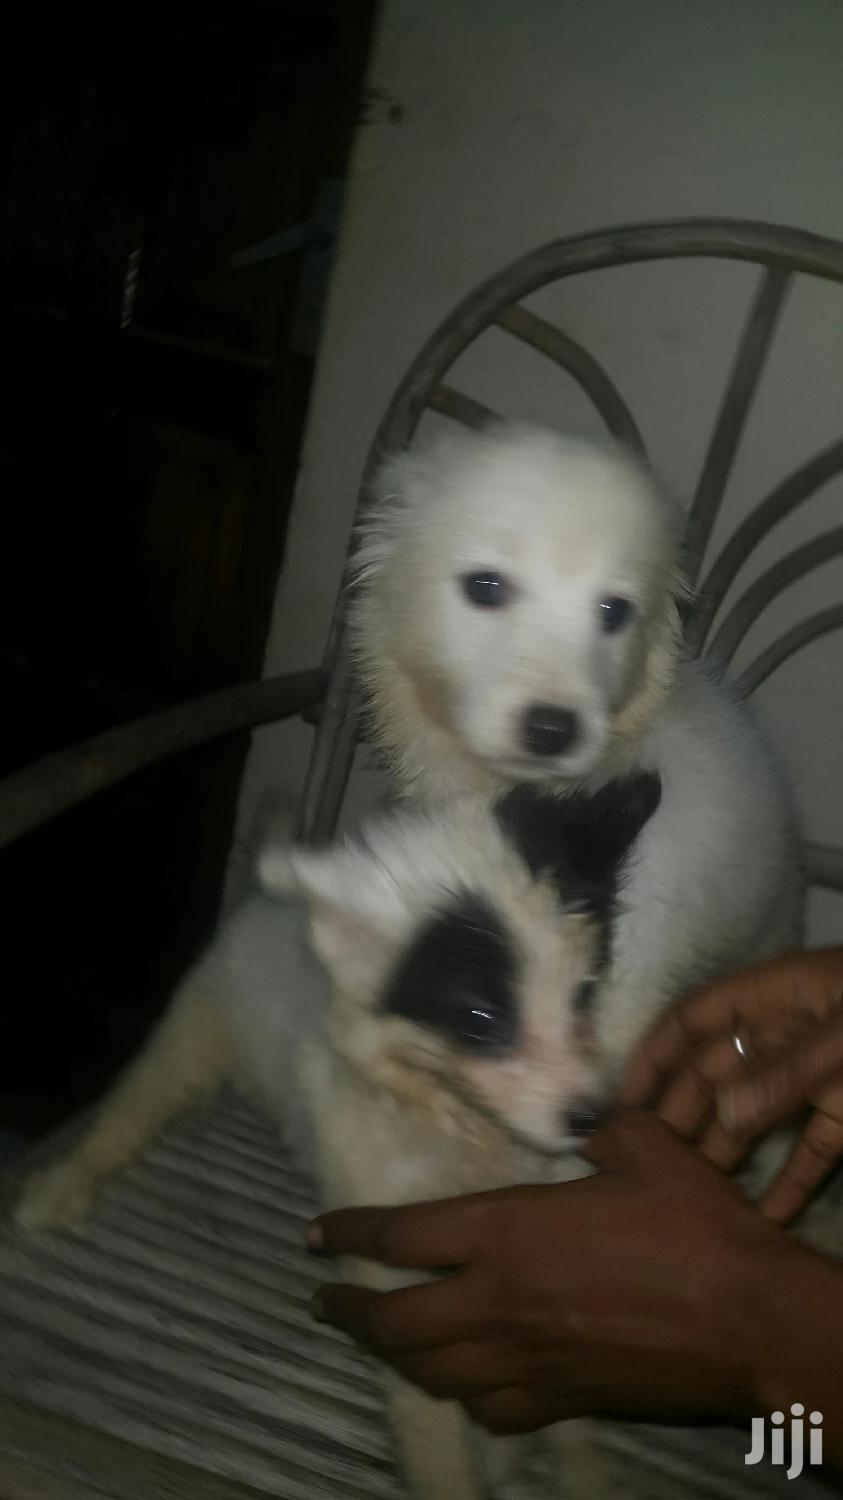 Archive: 1-3 month Female Mixed Breed Chihuahua